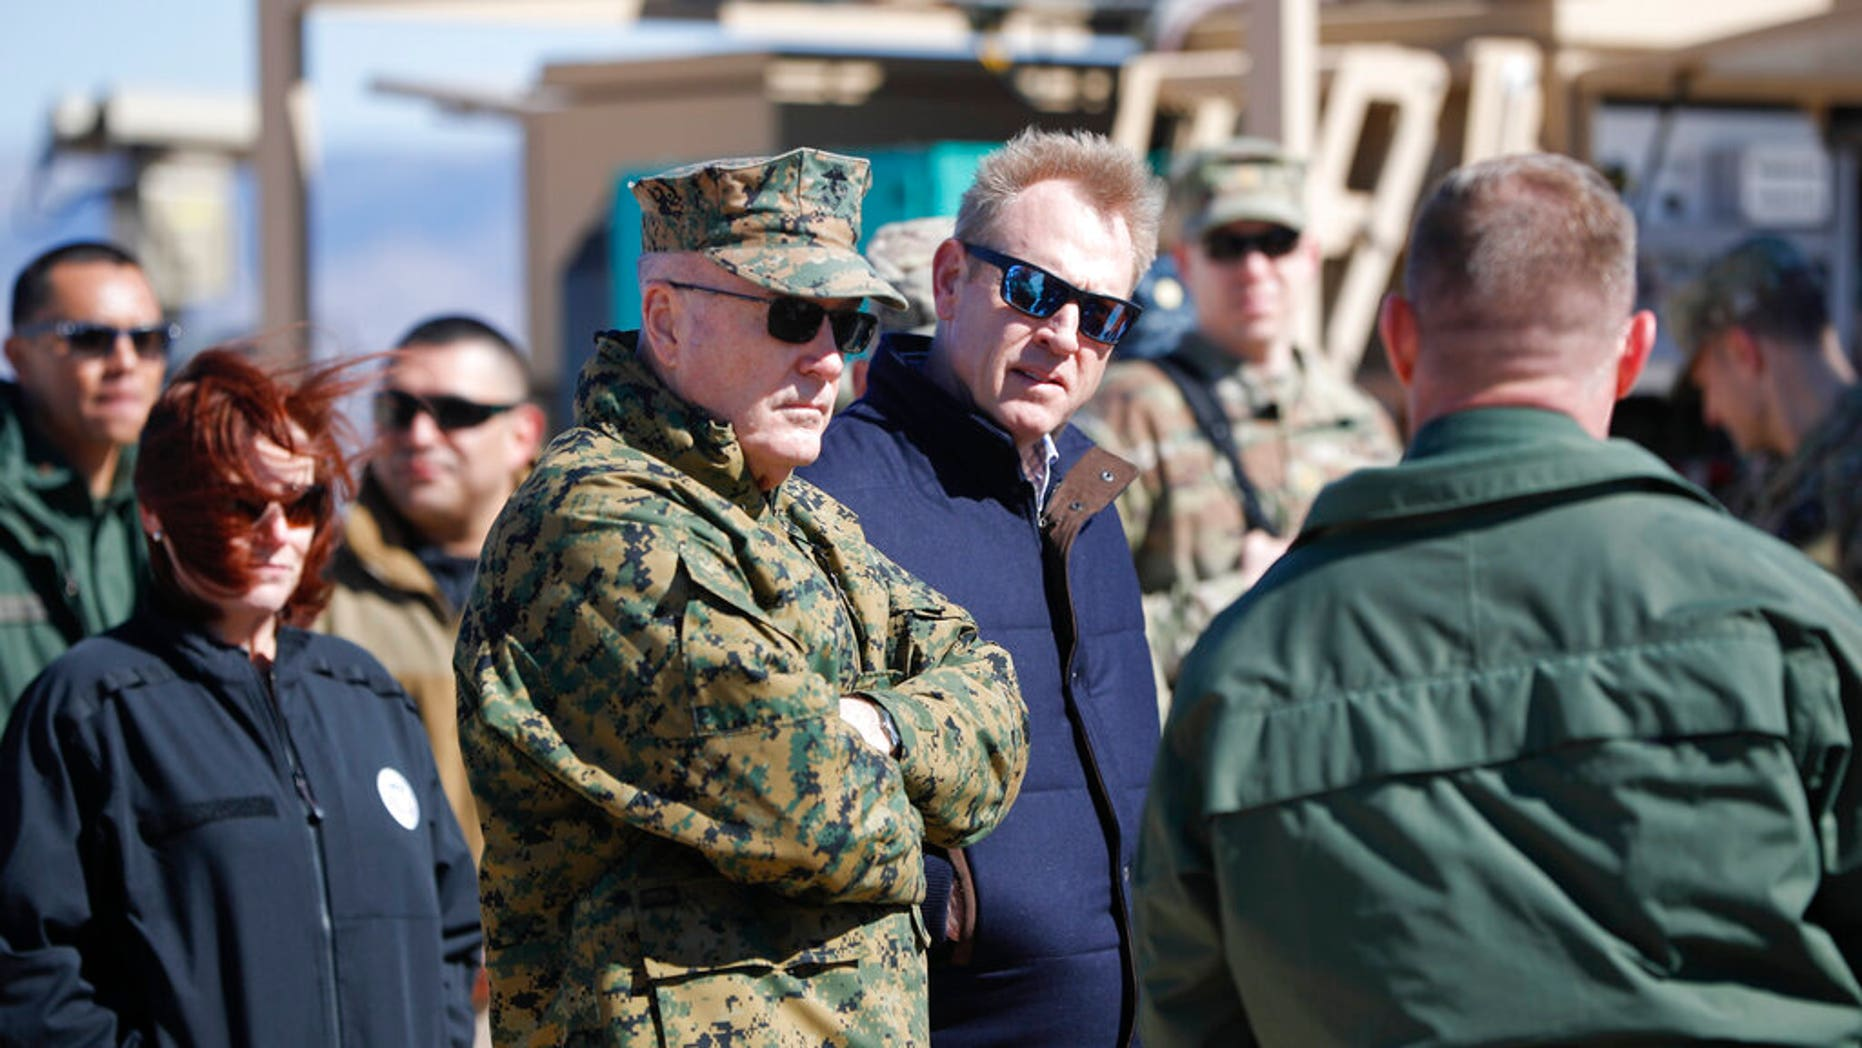 Acting Secretary of Defense Patrick Shanahan, center, and Joint Chiefs Chairman Gen. Joseph Dunford, left, tour the US-Mexico border at Santa Teresa Station in Sunland Park, N.M., Saturday, Feb. 23, 2019. Top defense officials toured sections of the U.S.-Mexico border Saturday to see how the military could reinforce efforts to block drug smuggling and other illegal activity, as the Pentagon weighs diverting billions of dollars for President Donald Trump's border wall. (AP Photo/Pablo Martinez Monsivais)